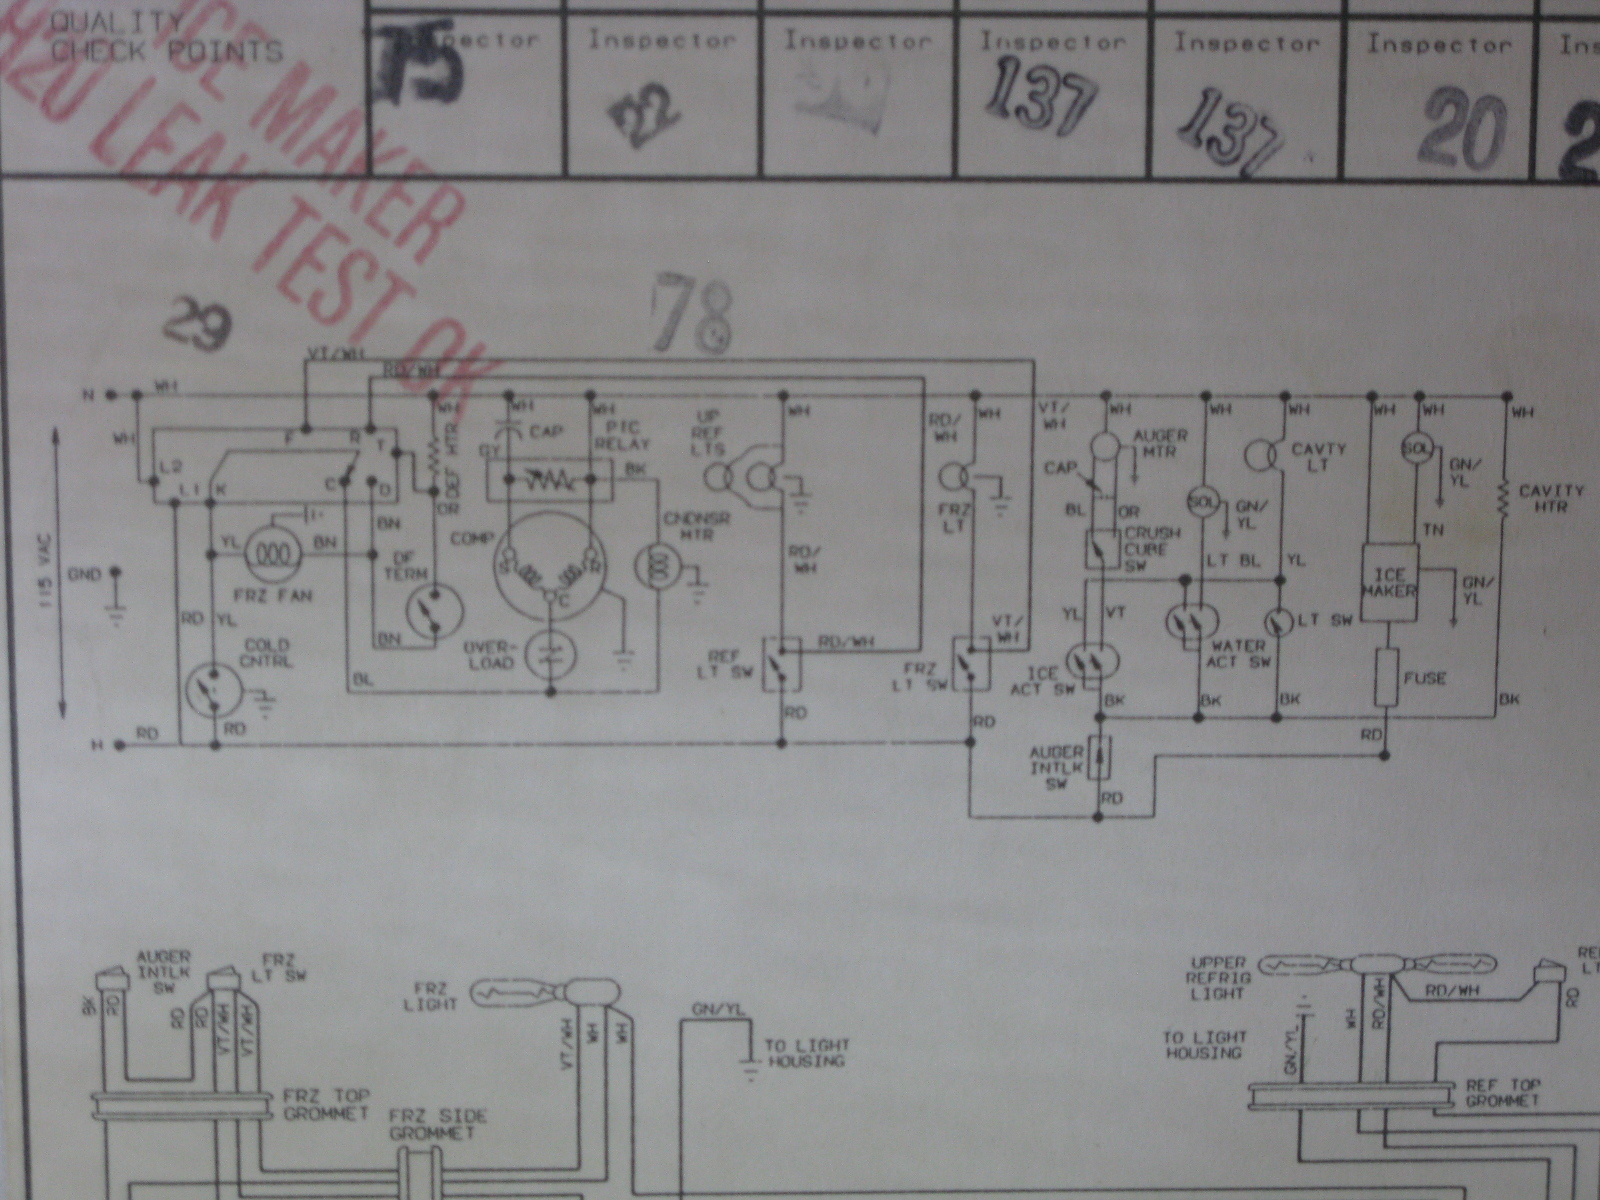 amana defrost timer wiring diagram amana refrigerator wiring diagram defrost  board wiring diagram defrost control timer